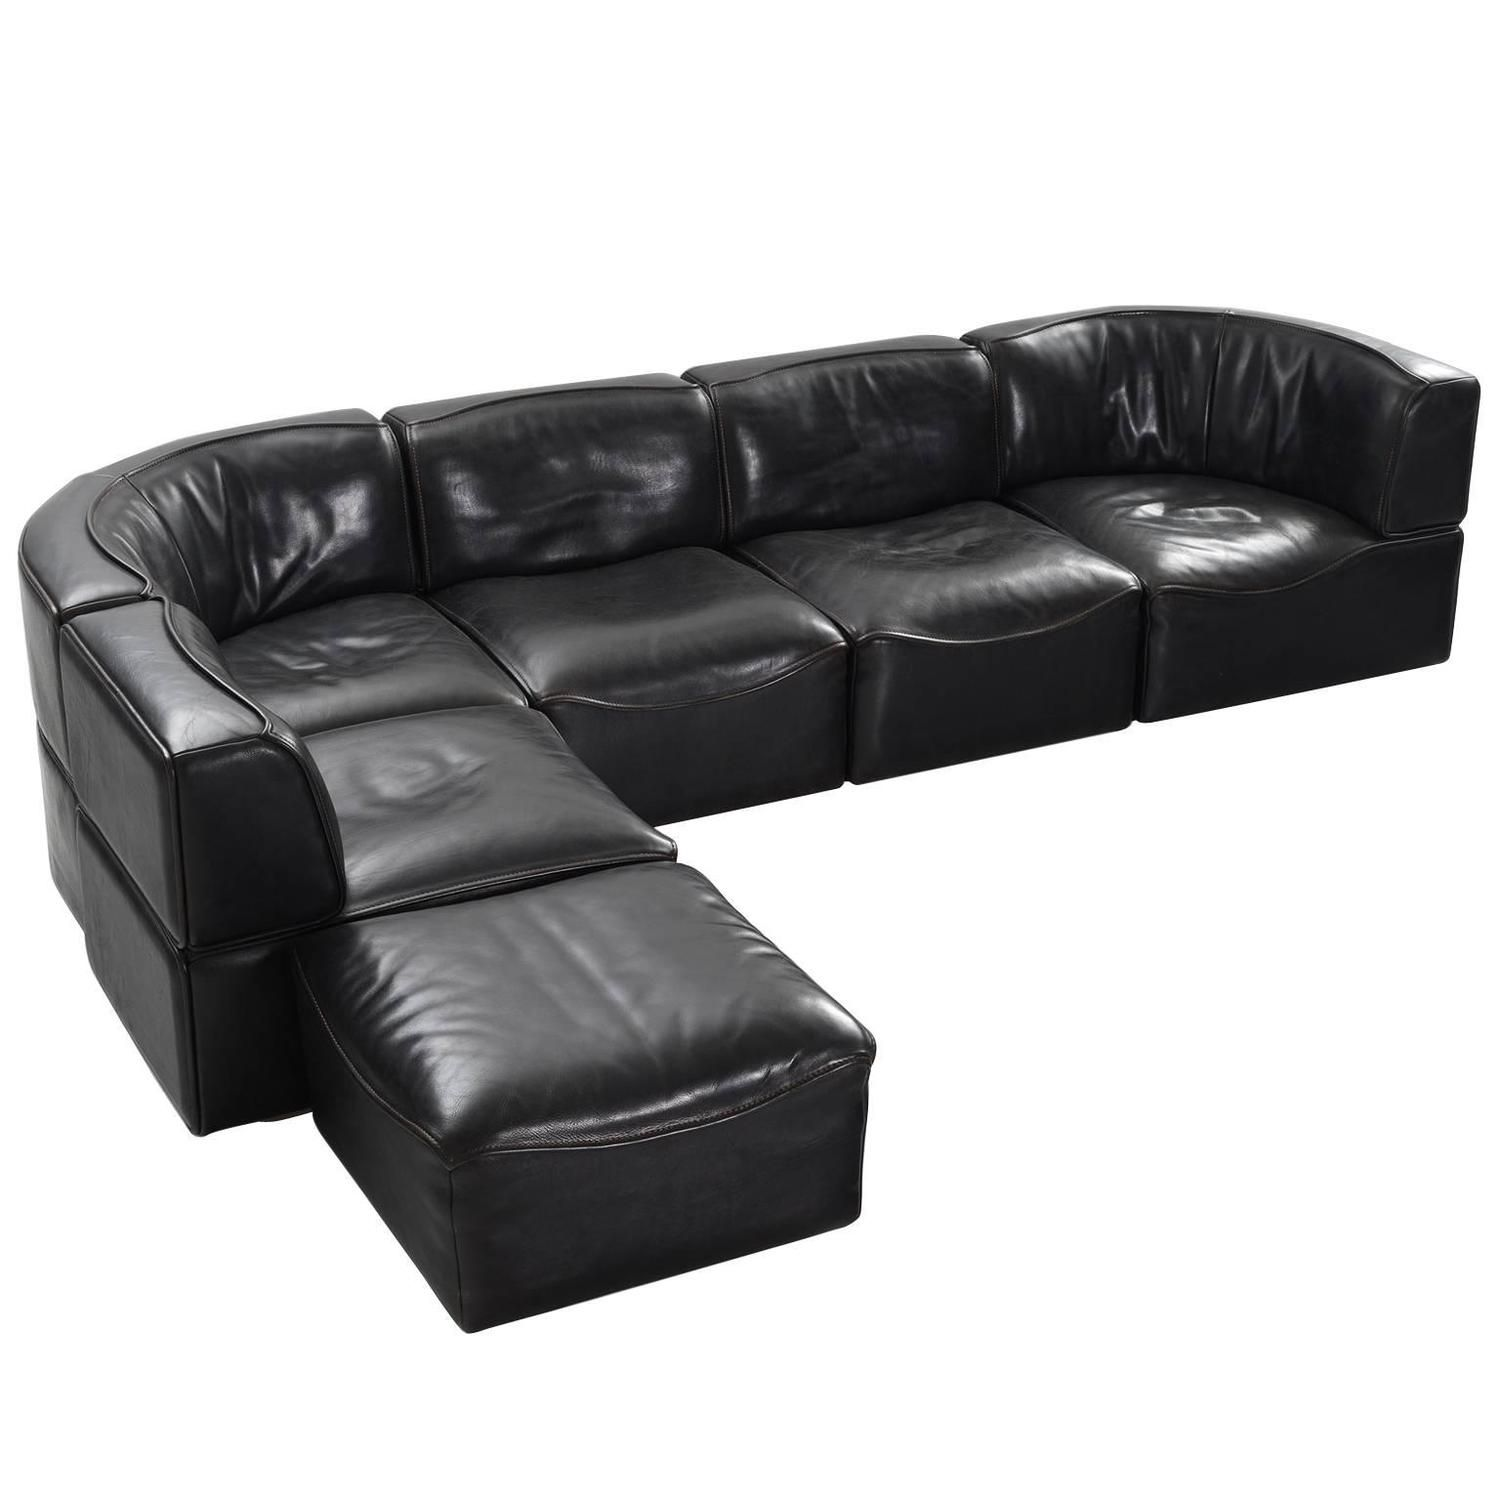 De Sede DS 15 Modular Sofa in Black Buffalo Leather